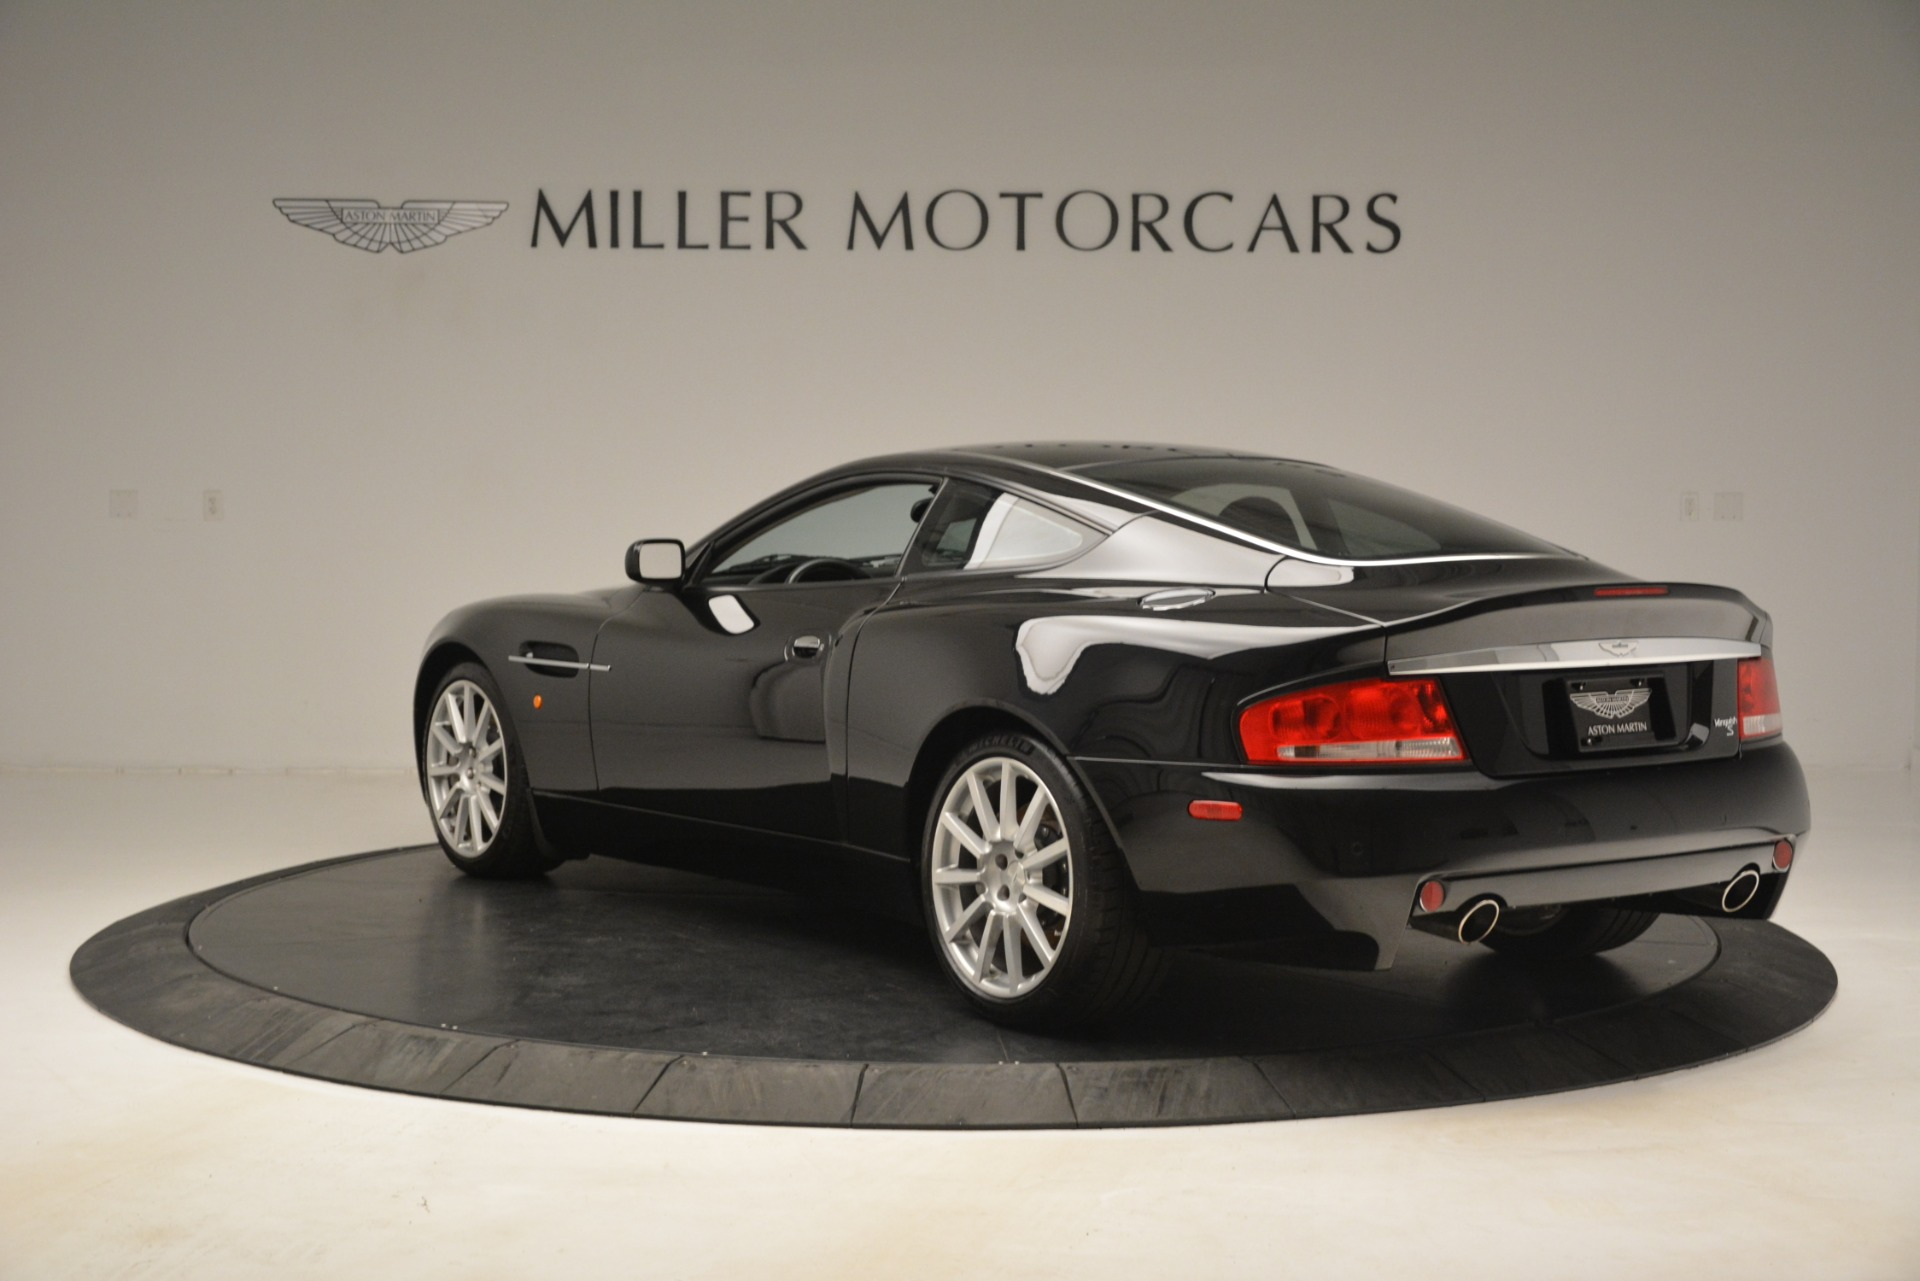 Used 2005 Aston Martin V12 Vanquish S Coupe For Sale In Westport, CT 3218_p5